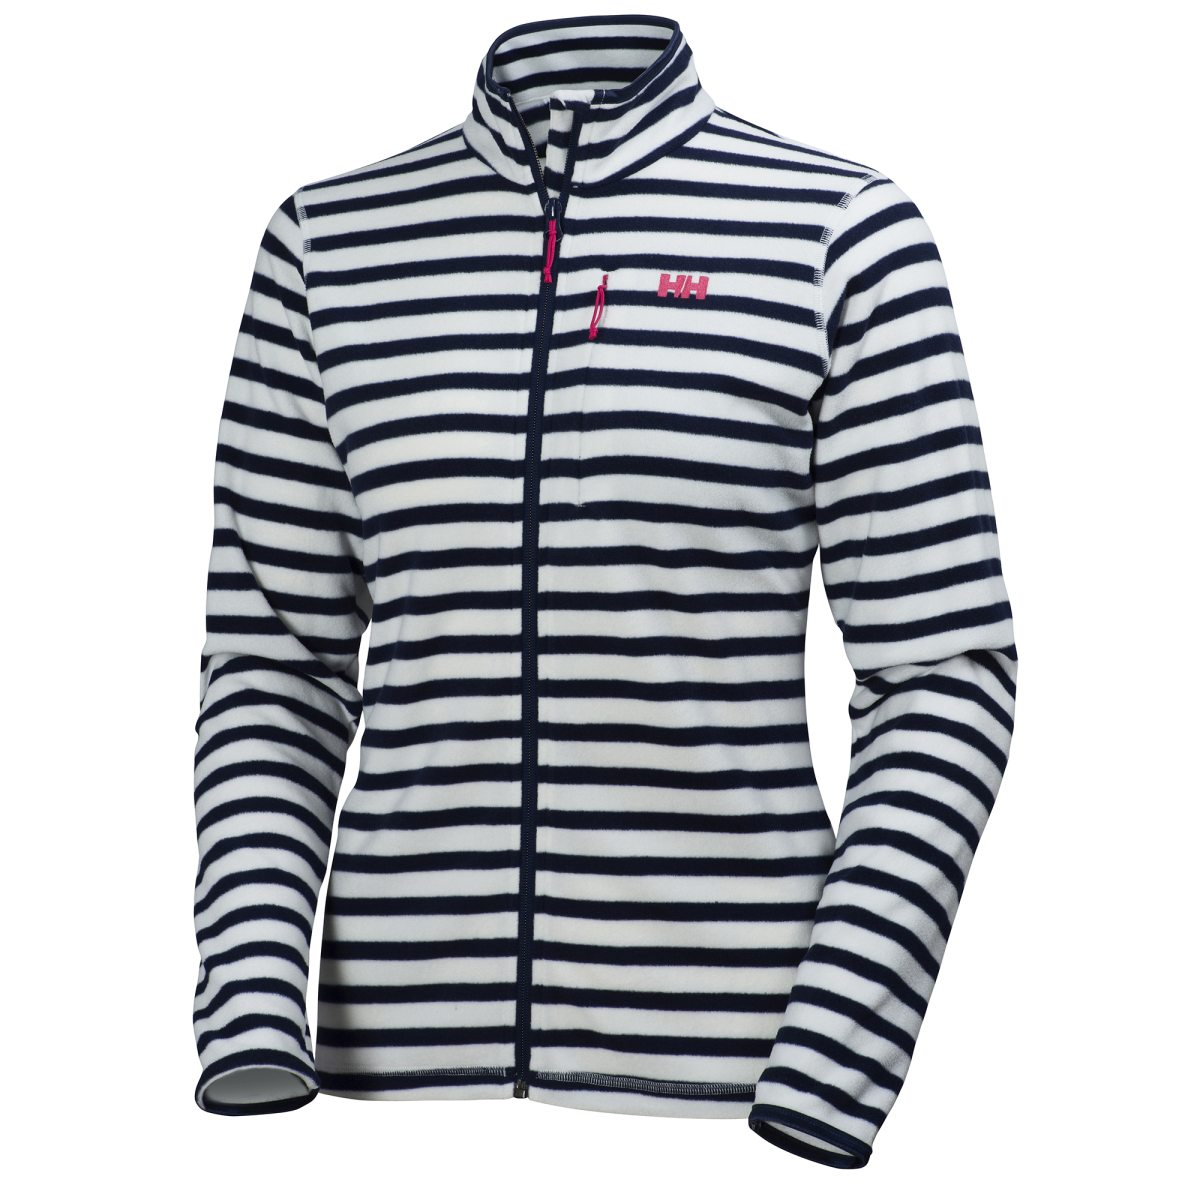 94b87556 helly hansen k fleece jakke sunburned available via PricePi.com ...